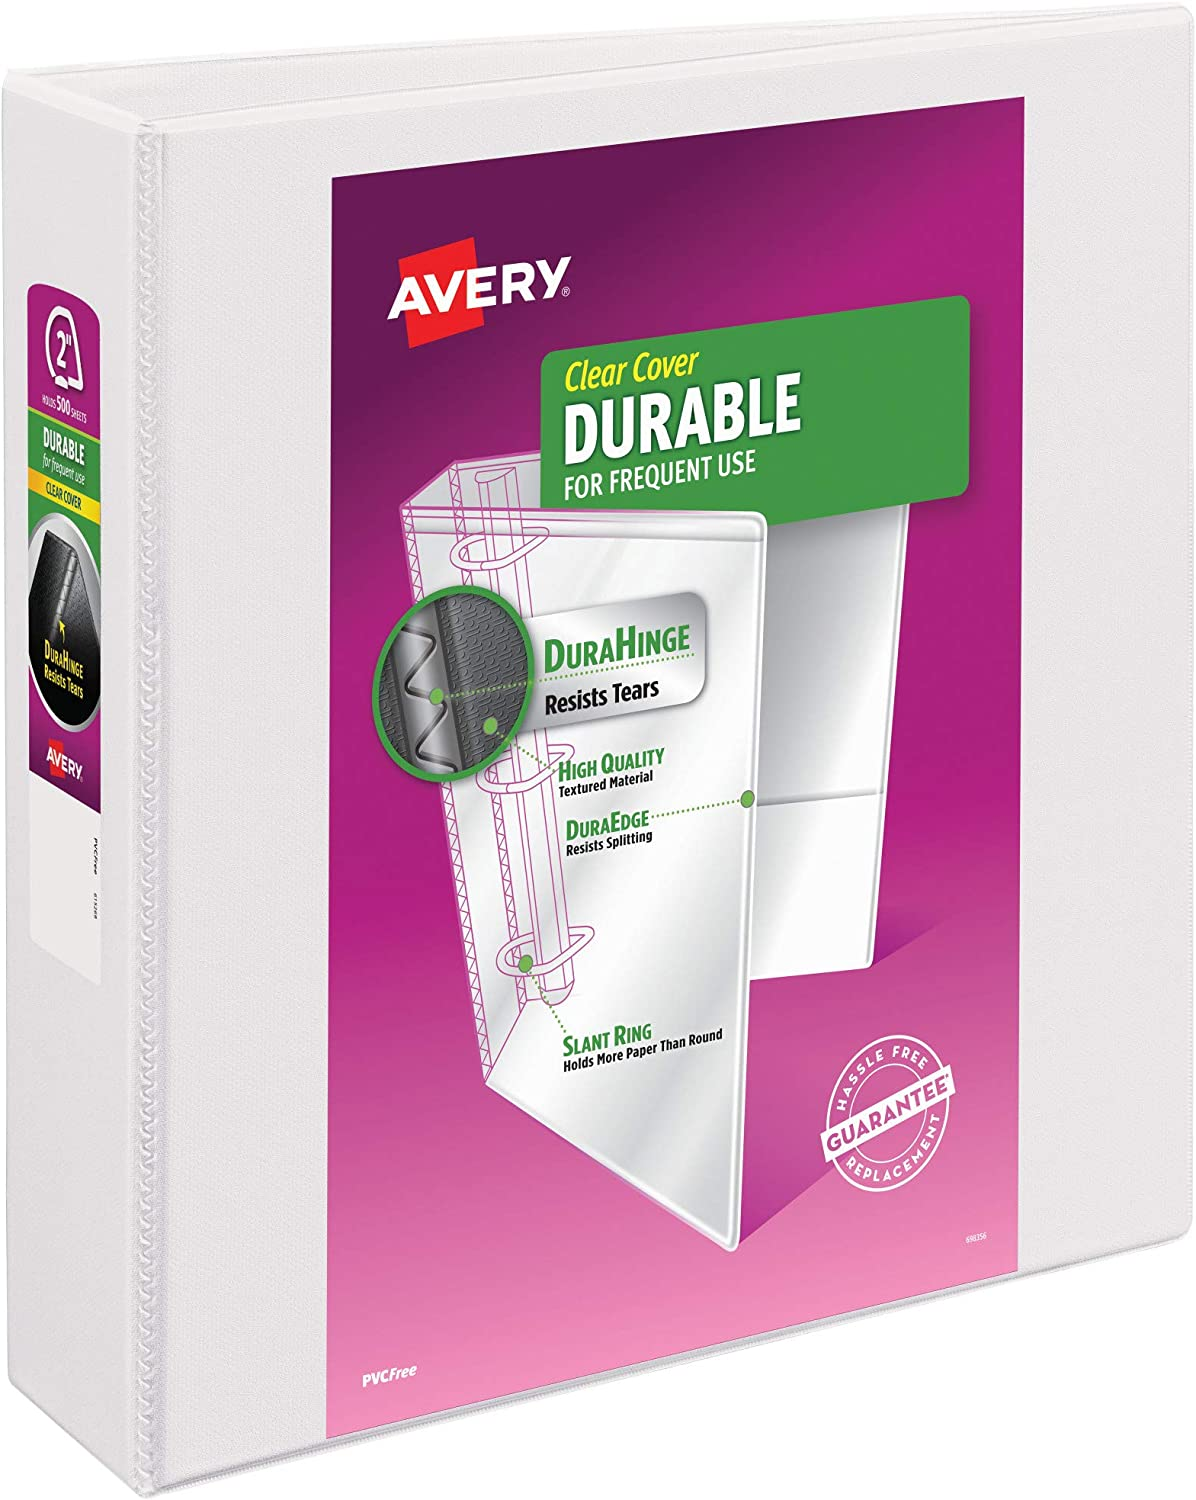 AVERY Durable National products View 3 Ring Binder Sale SALE% OFF Rings Bi 2